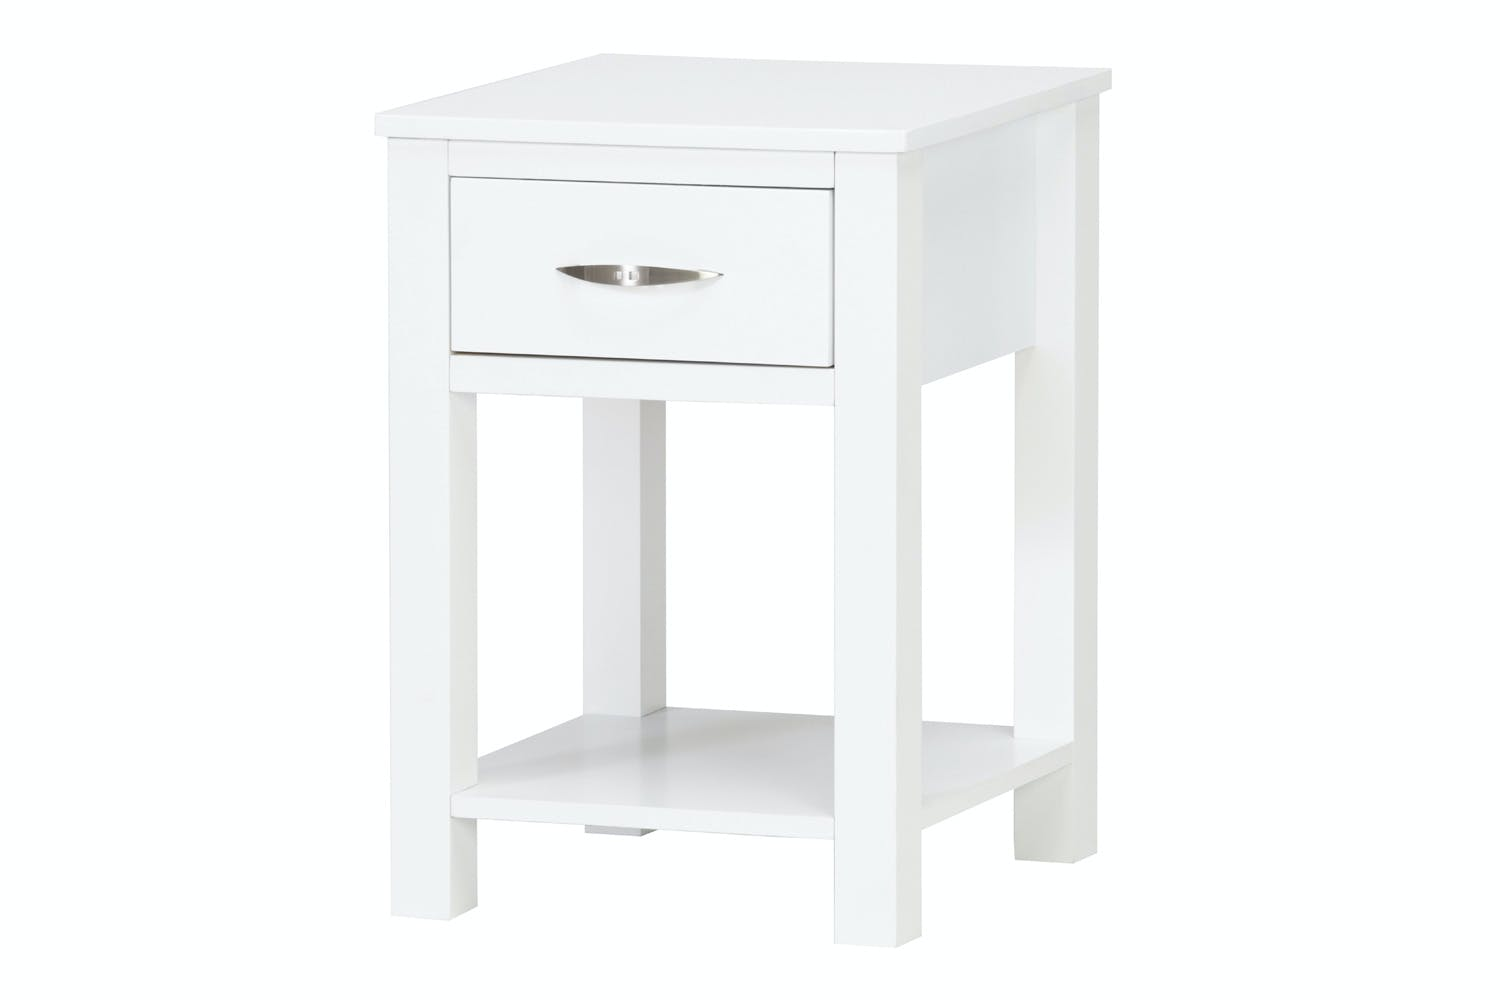 Office furniture galway - Wishlist Compare